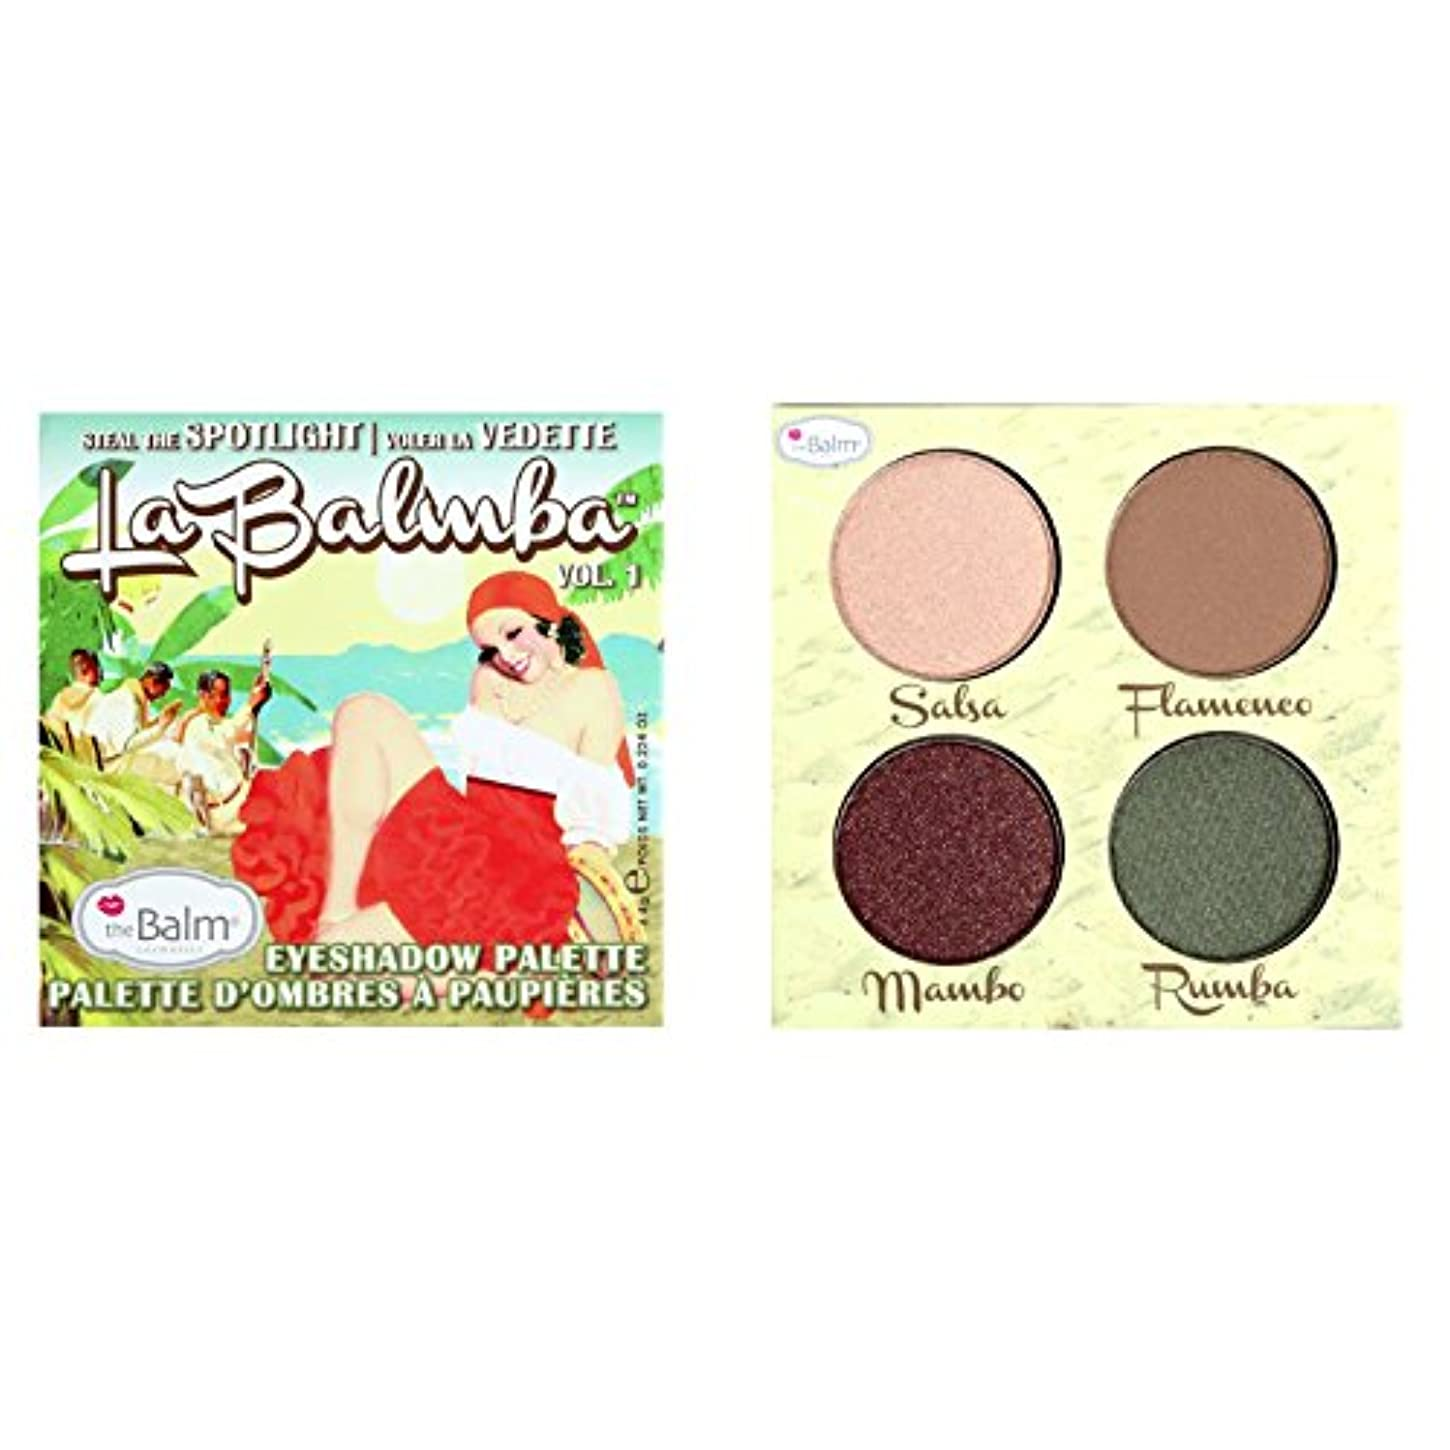 フィットネス降ろす二度theBalm La Balmba Steal the Spotlight Eyeshadow Palette Volume 1 (並行輸入品)